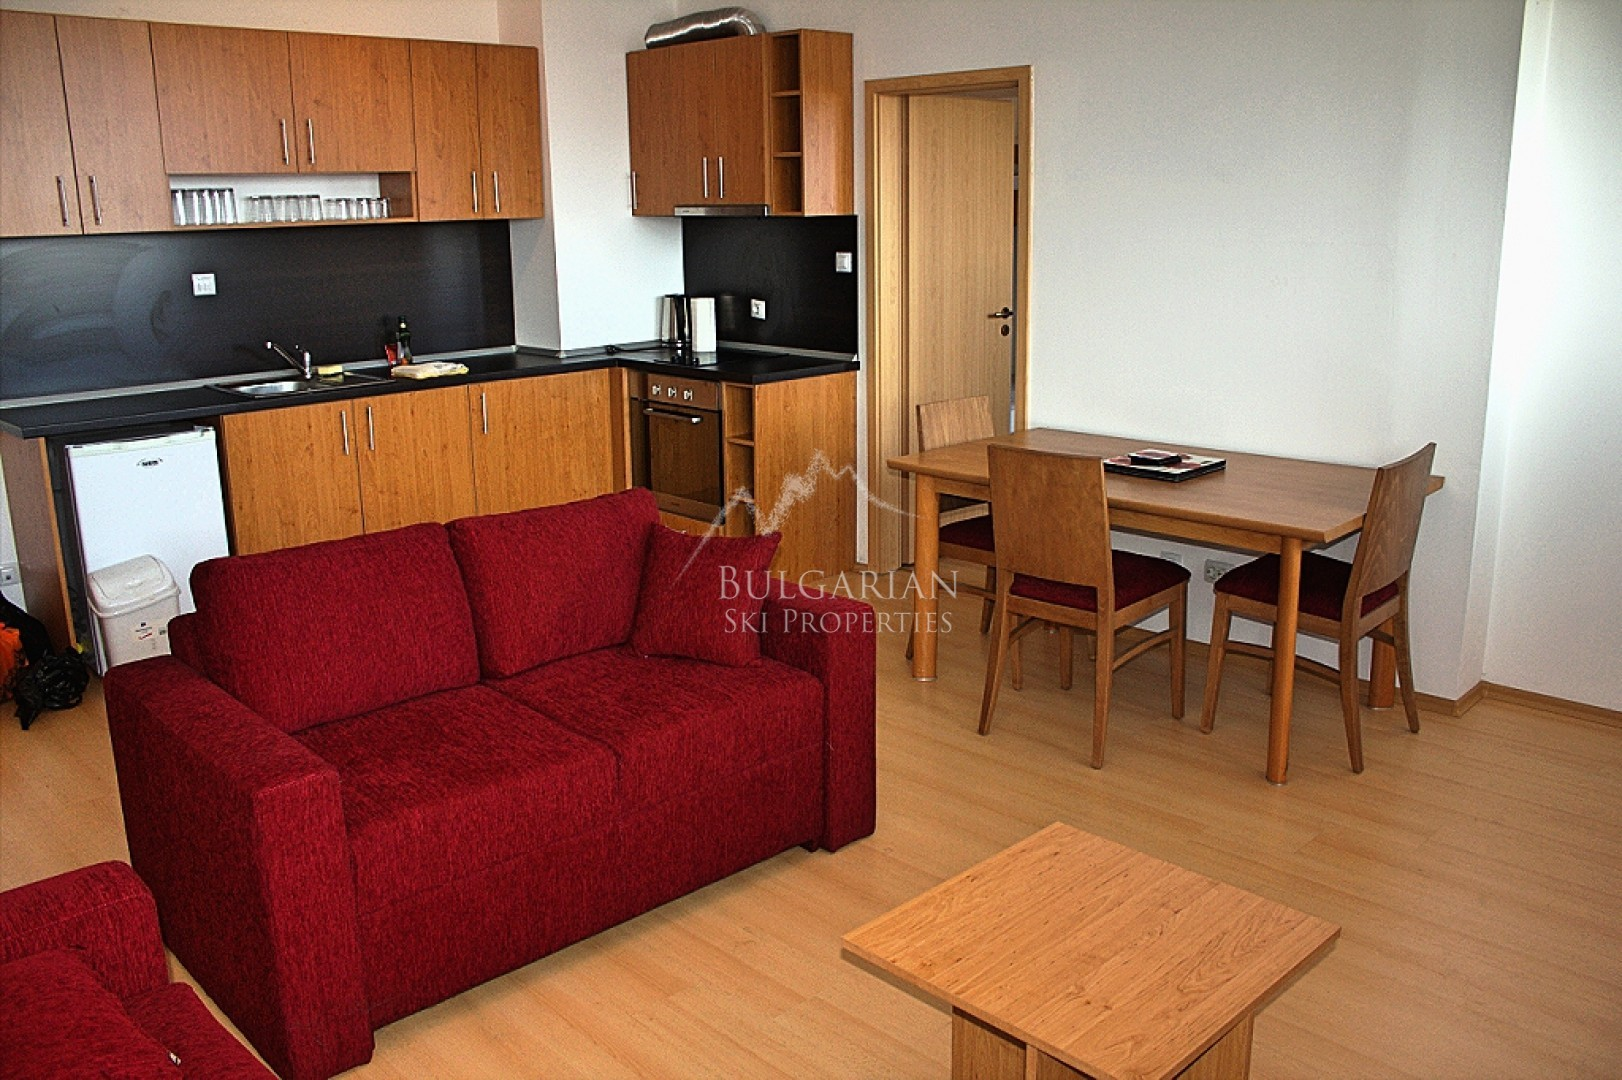 Spacious two-bedroom apartment for sale next to the Park of Bansko